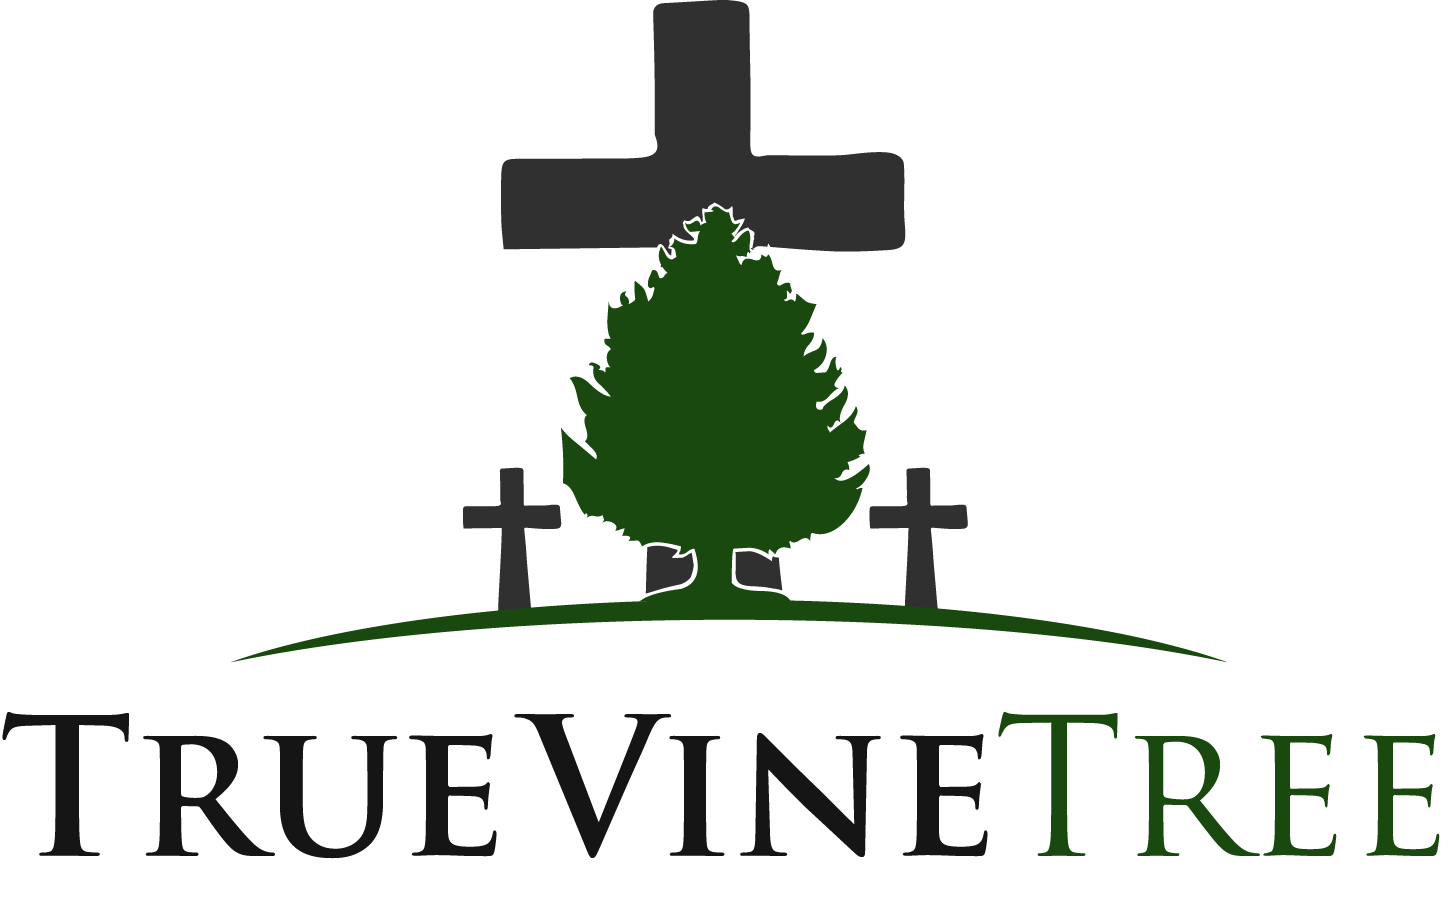 True Vine Tree Service v2